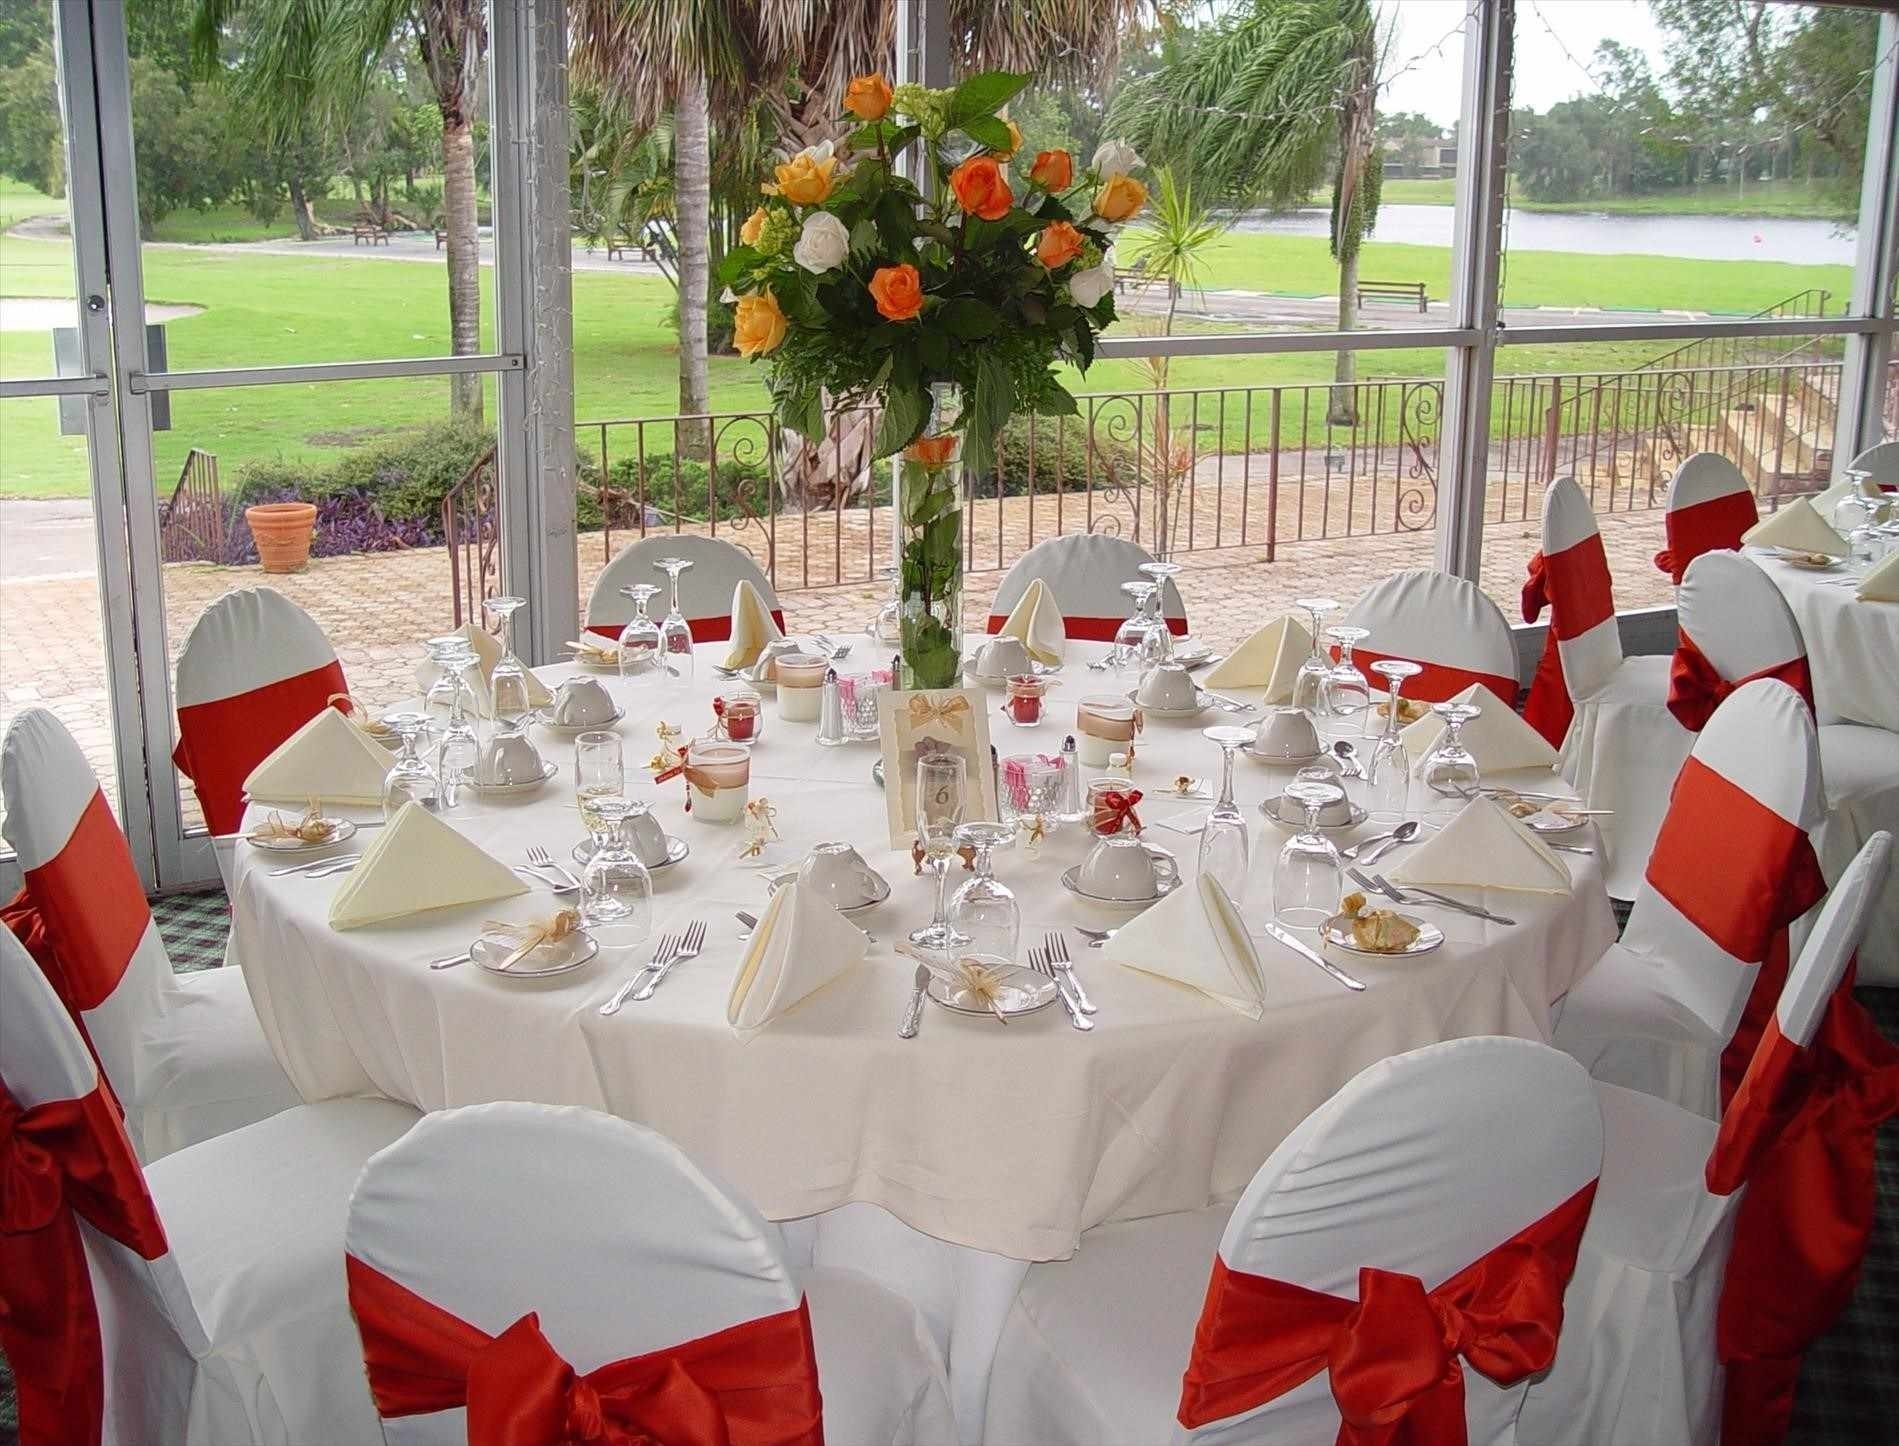 10 Lovable Ideas For Wedding Centerpieces On A Budget simple wedding ideas of simple outdoor wedding ideas on a budget 2021